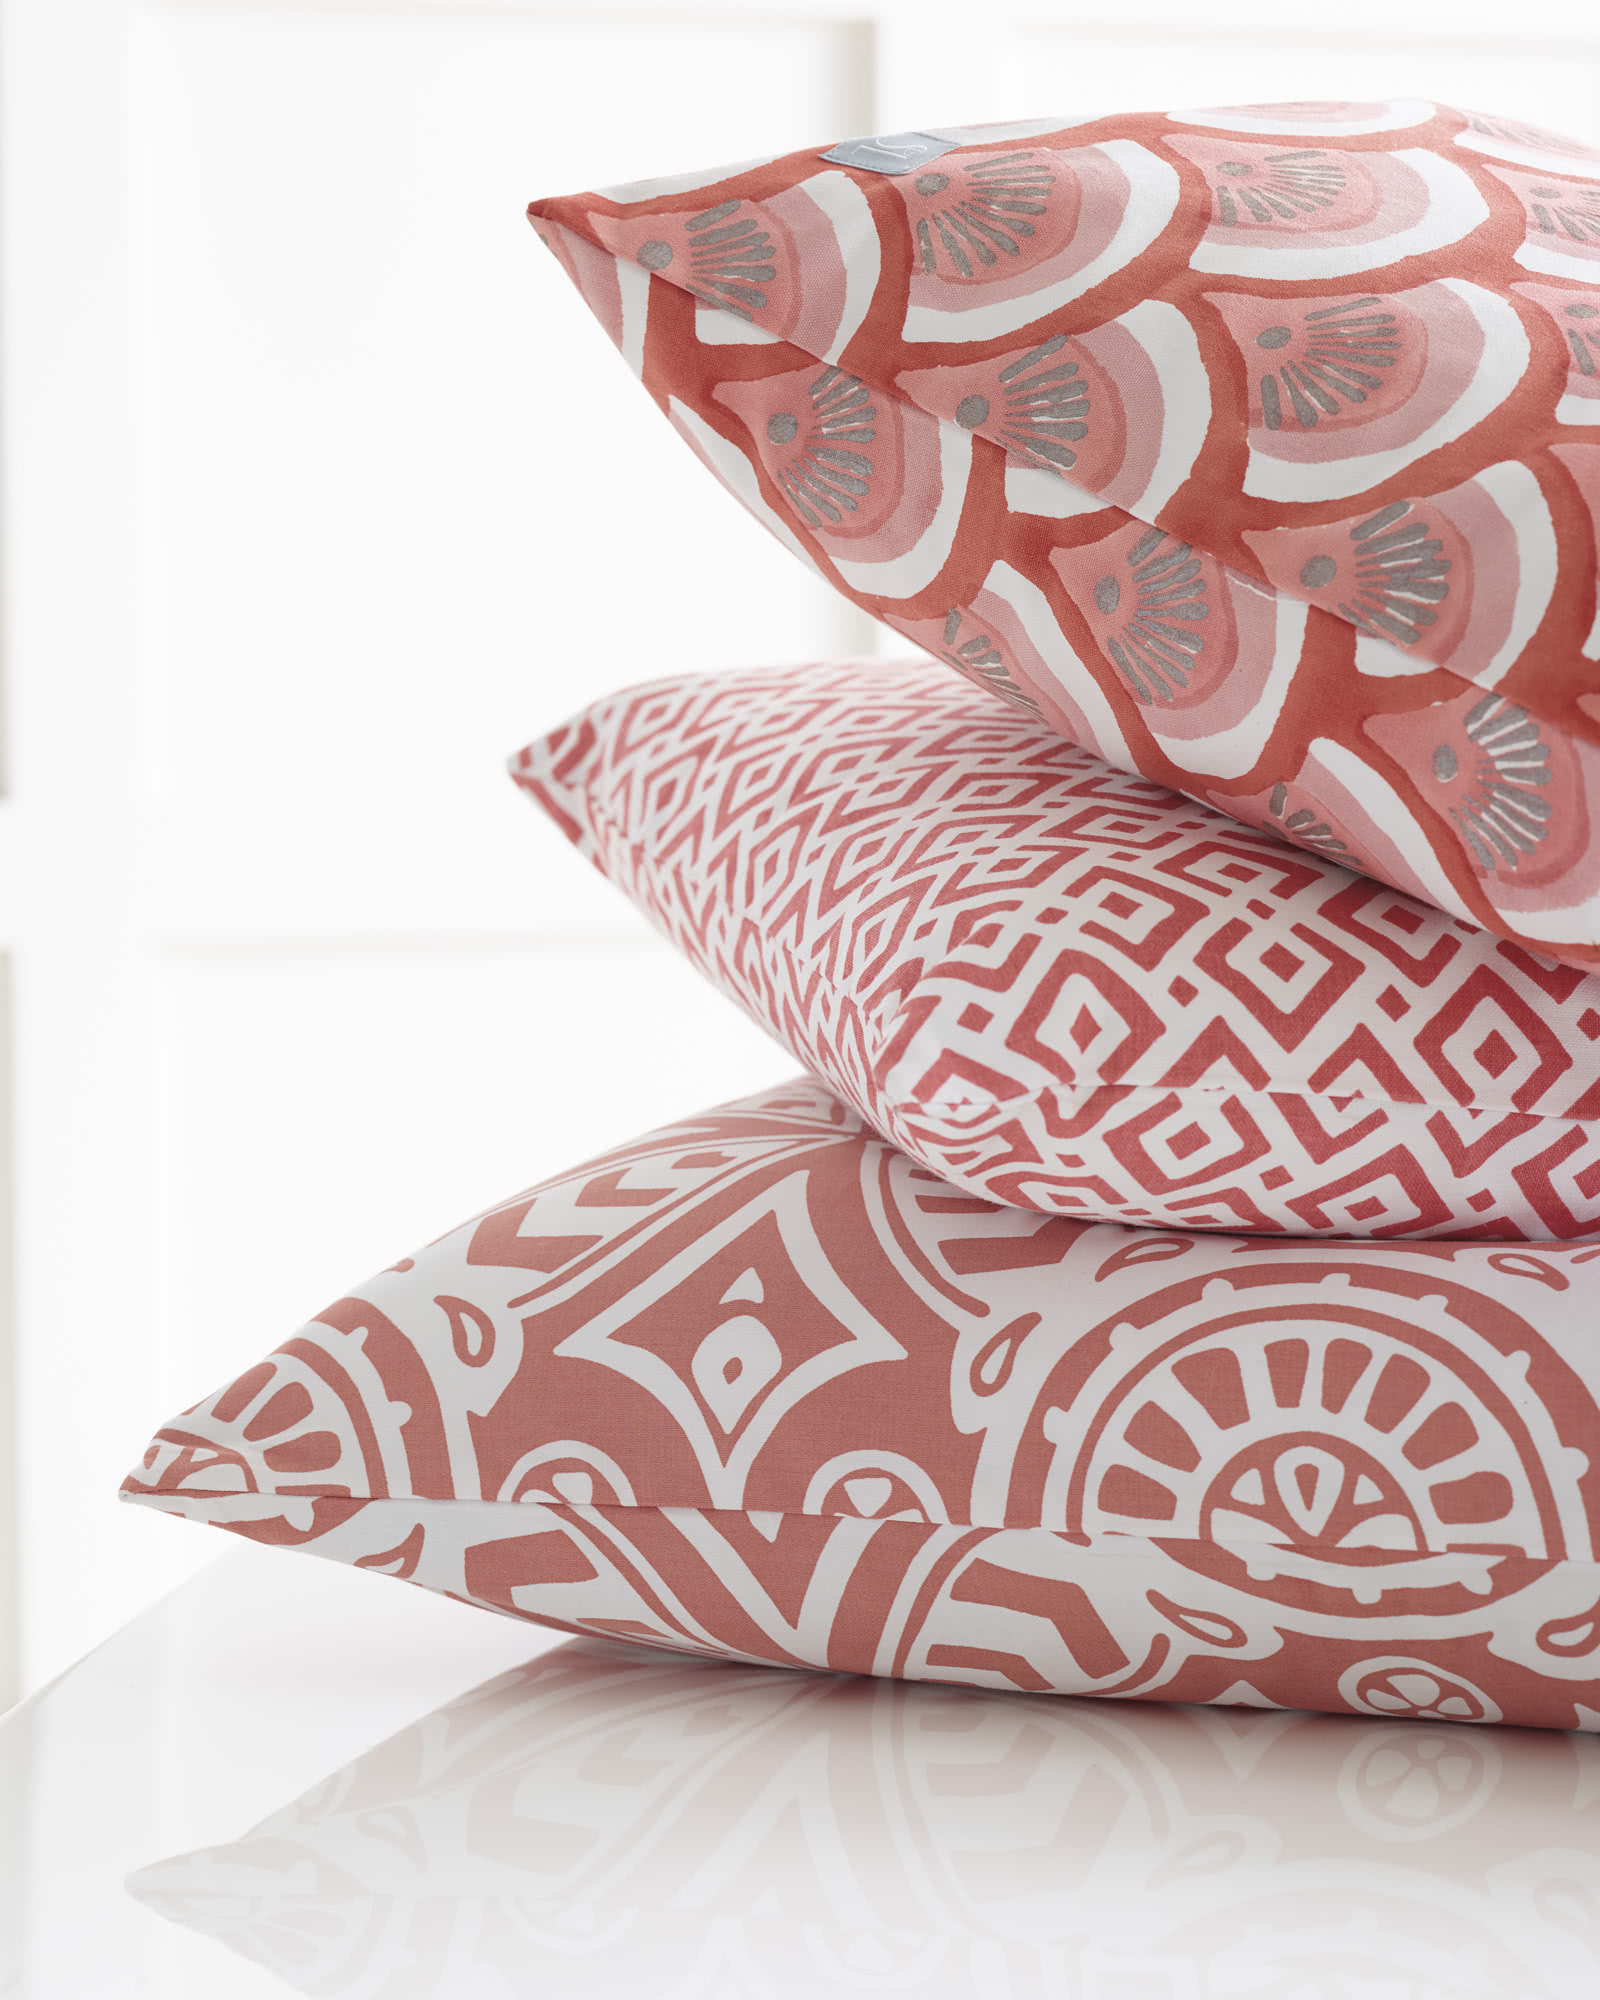 Kyoto Pillow Covers